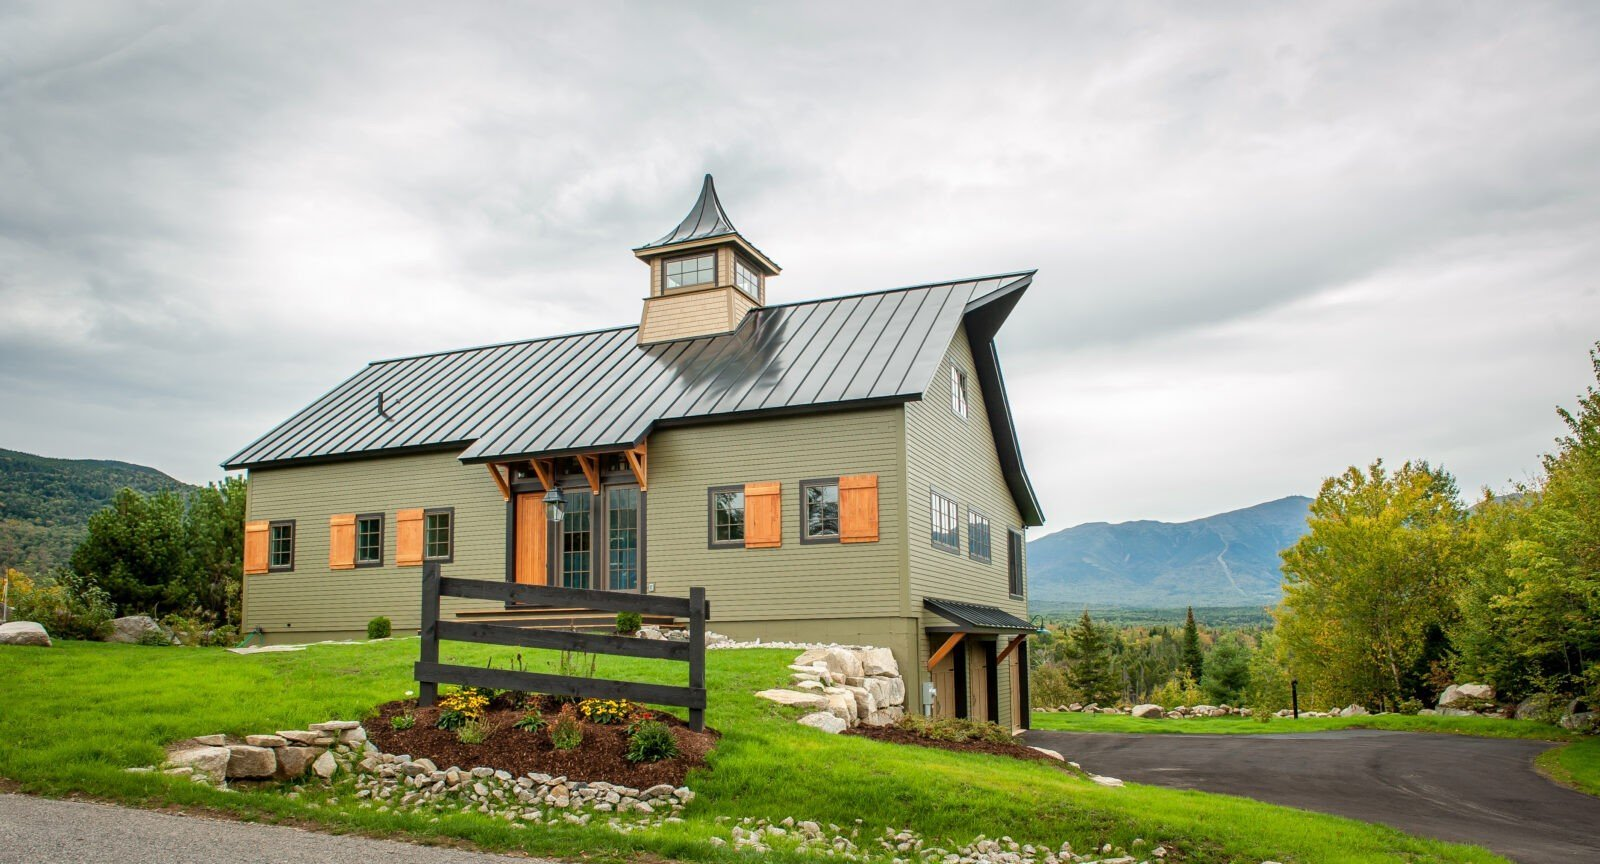 Top notch barn home plans from the ybh design team for Houses with barns